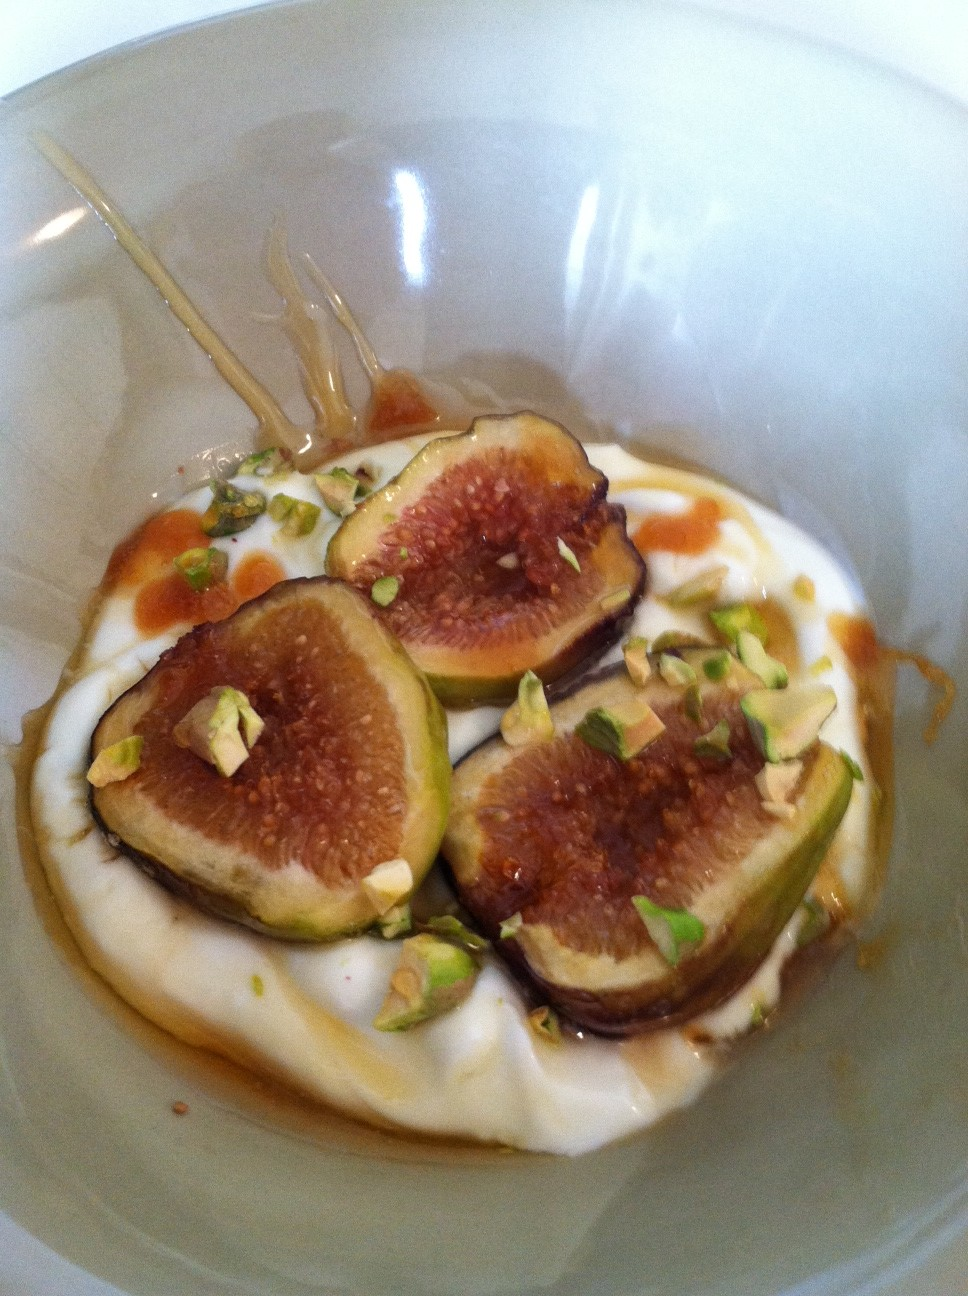 ... heat. Cook figs, cut sides down, until caramelized, about 5 minutes